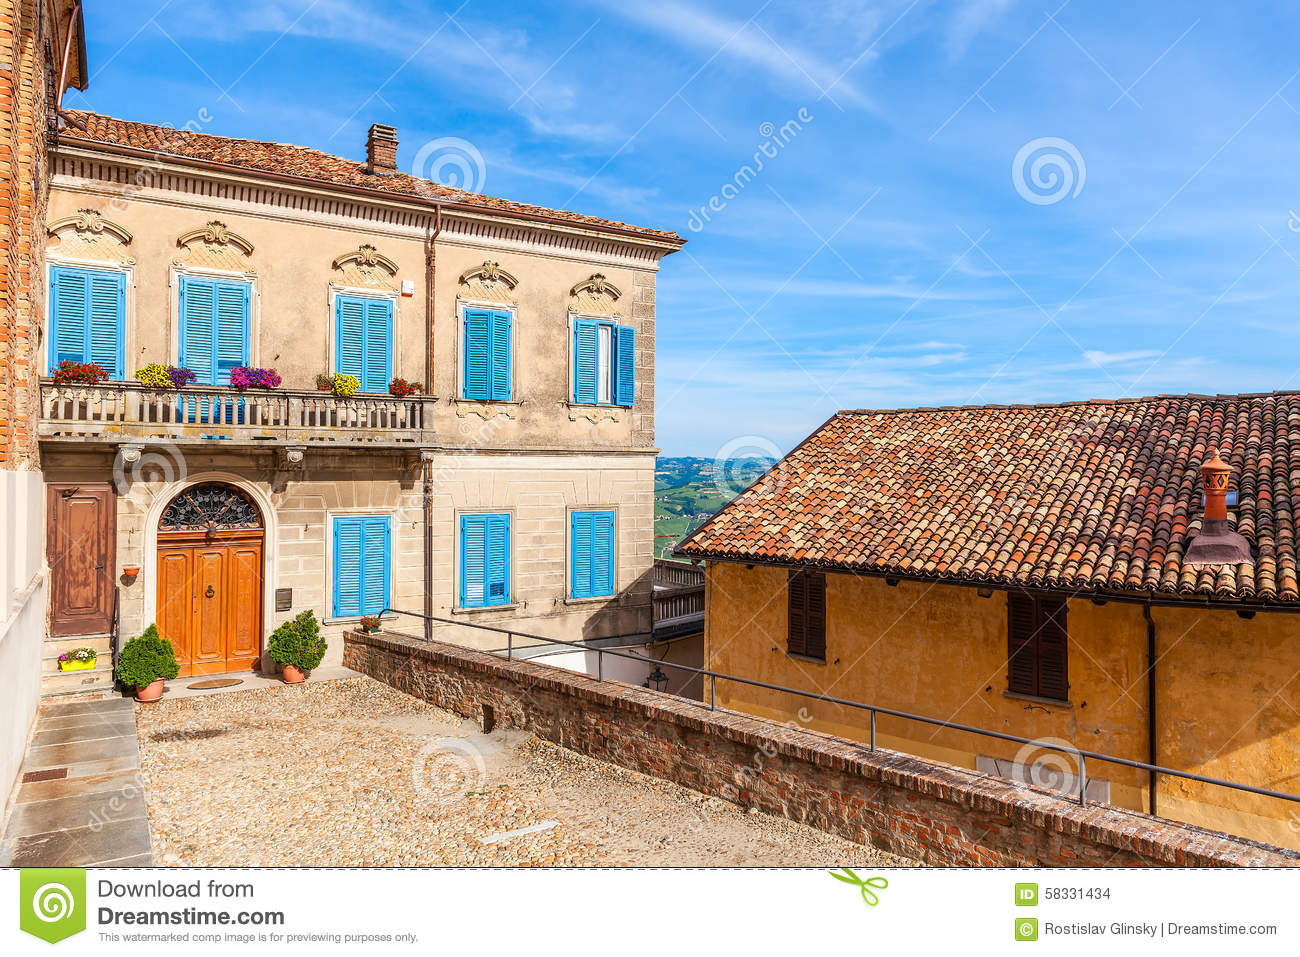 Maison color e dans la petite ville italienne photo stock for Maison italienne architecture